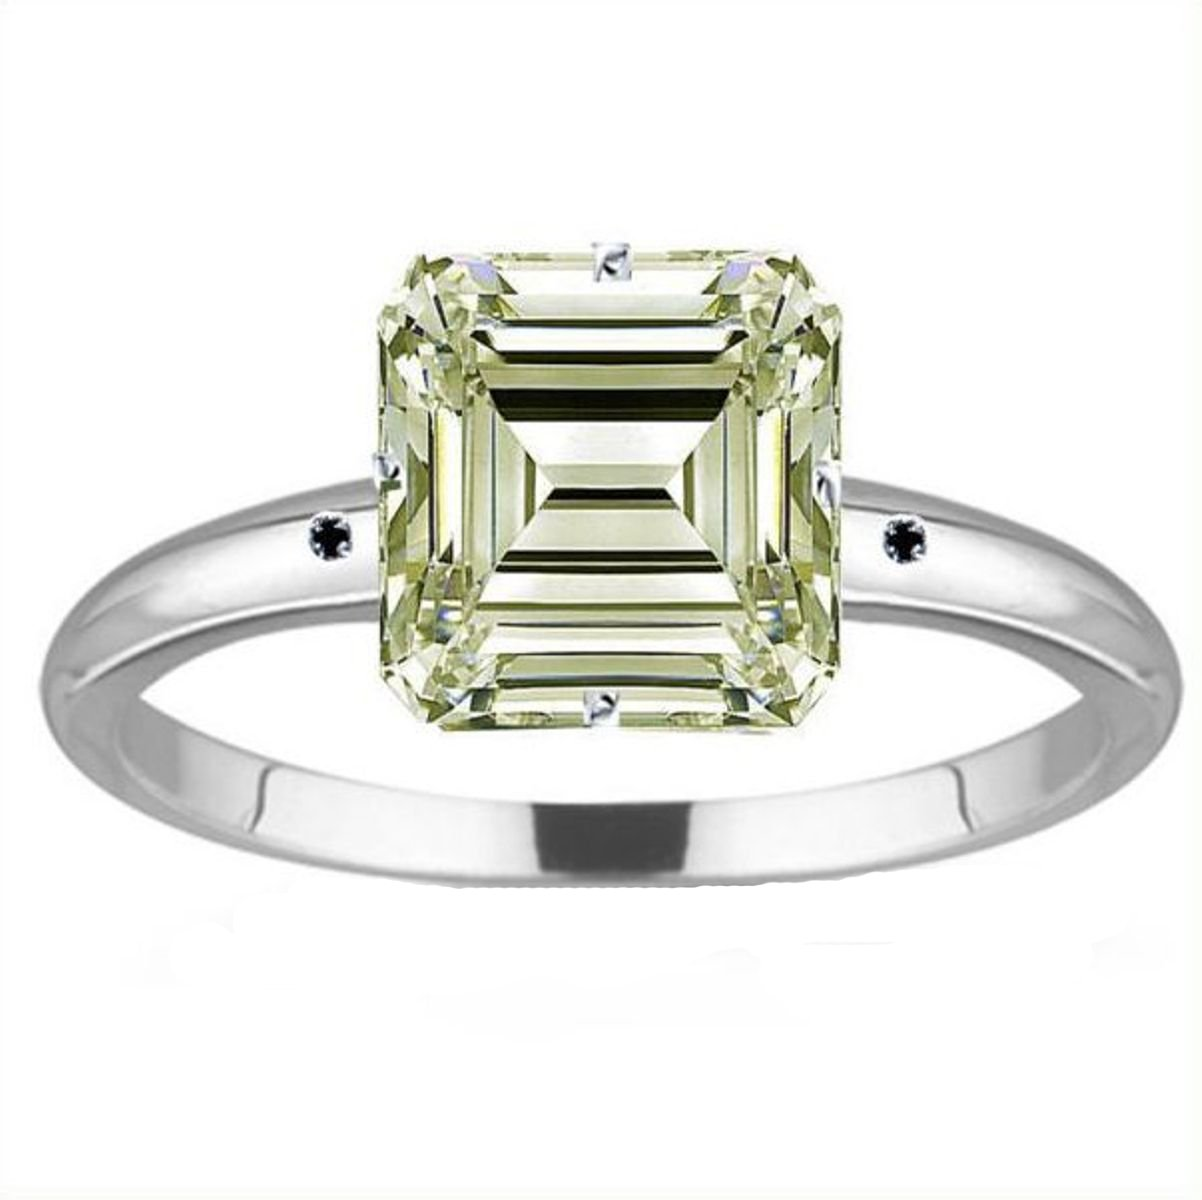 RINGJEWEL 6.48 ct SI1 Emerald Moissanite Silver Plated Engagement Ring Off White Color Size 7.